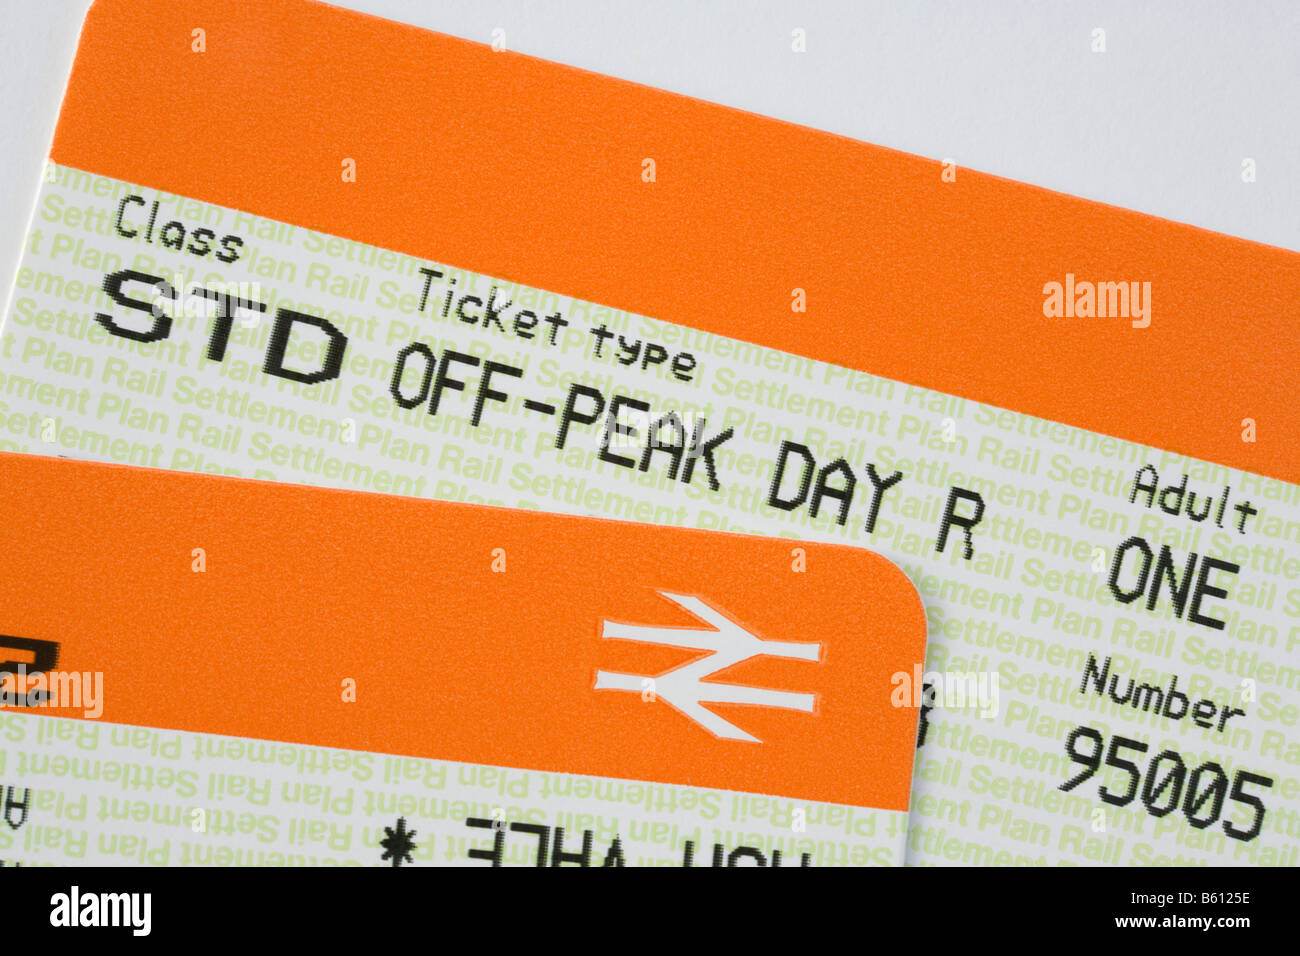 britain-uk-british-rail-tickets-for-stan